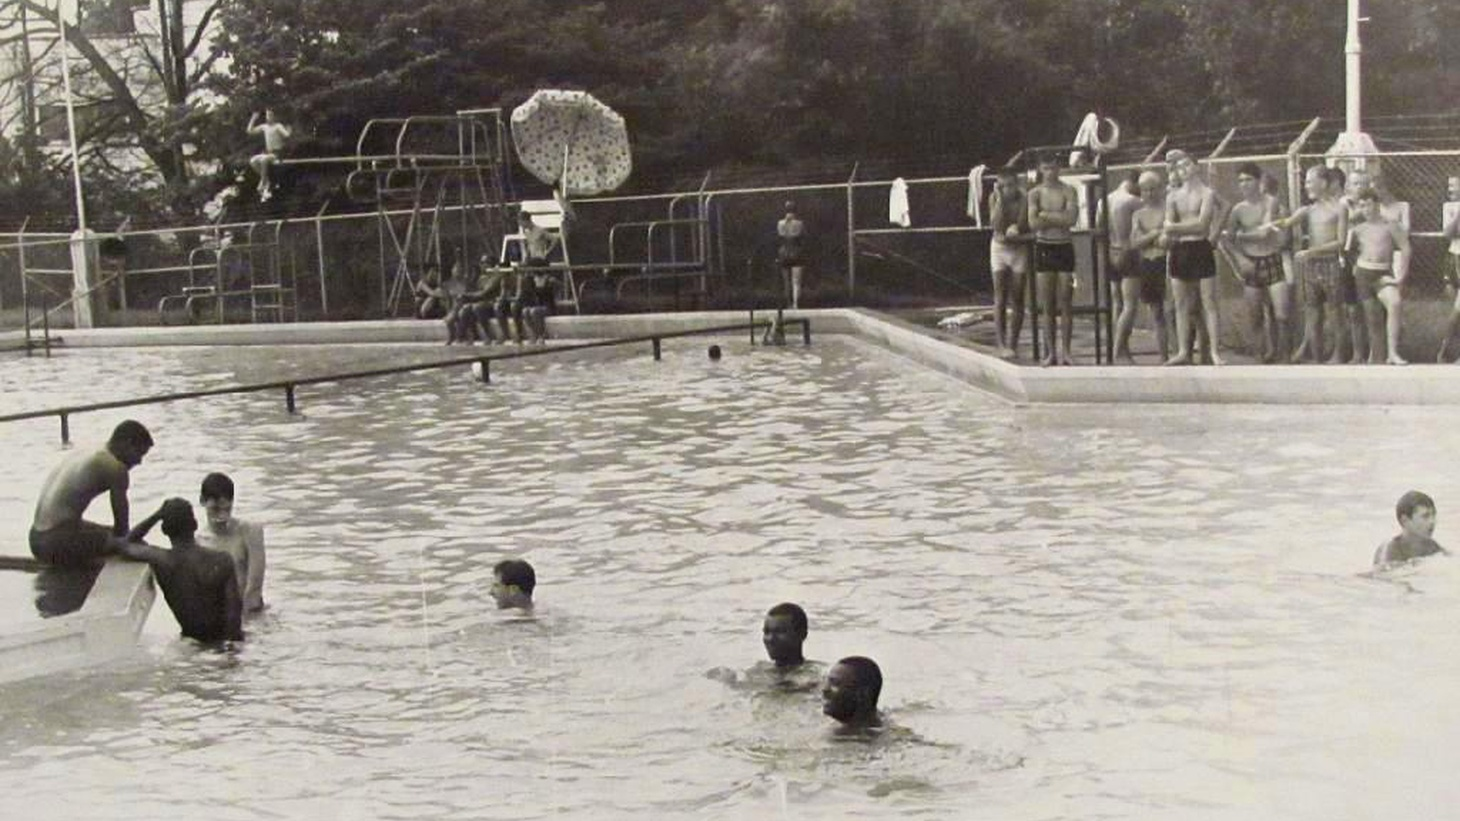 The town of McKinney, Texas is in the news after a video surfaced over the weekend of a white police officer using force on a group of black teens at a pool party. We look at the surprisingly intertwined history of public pools and segregation.